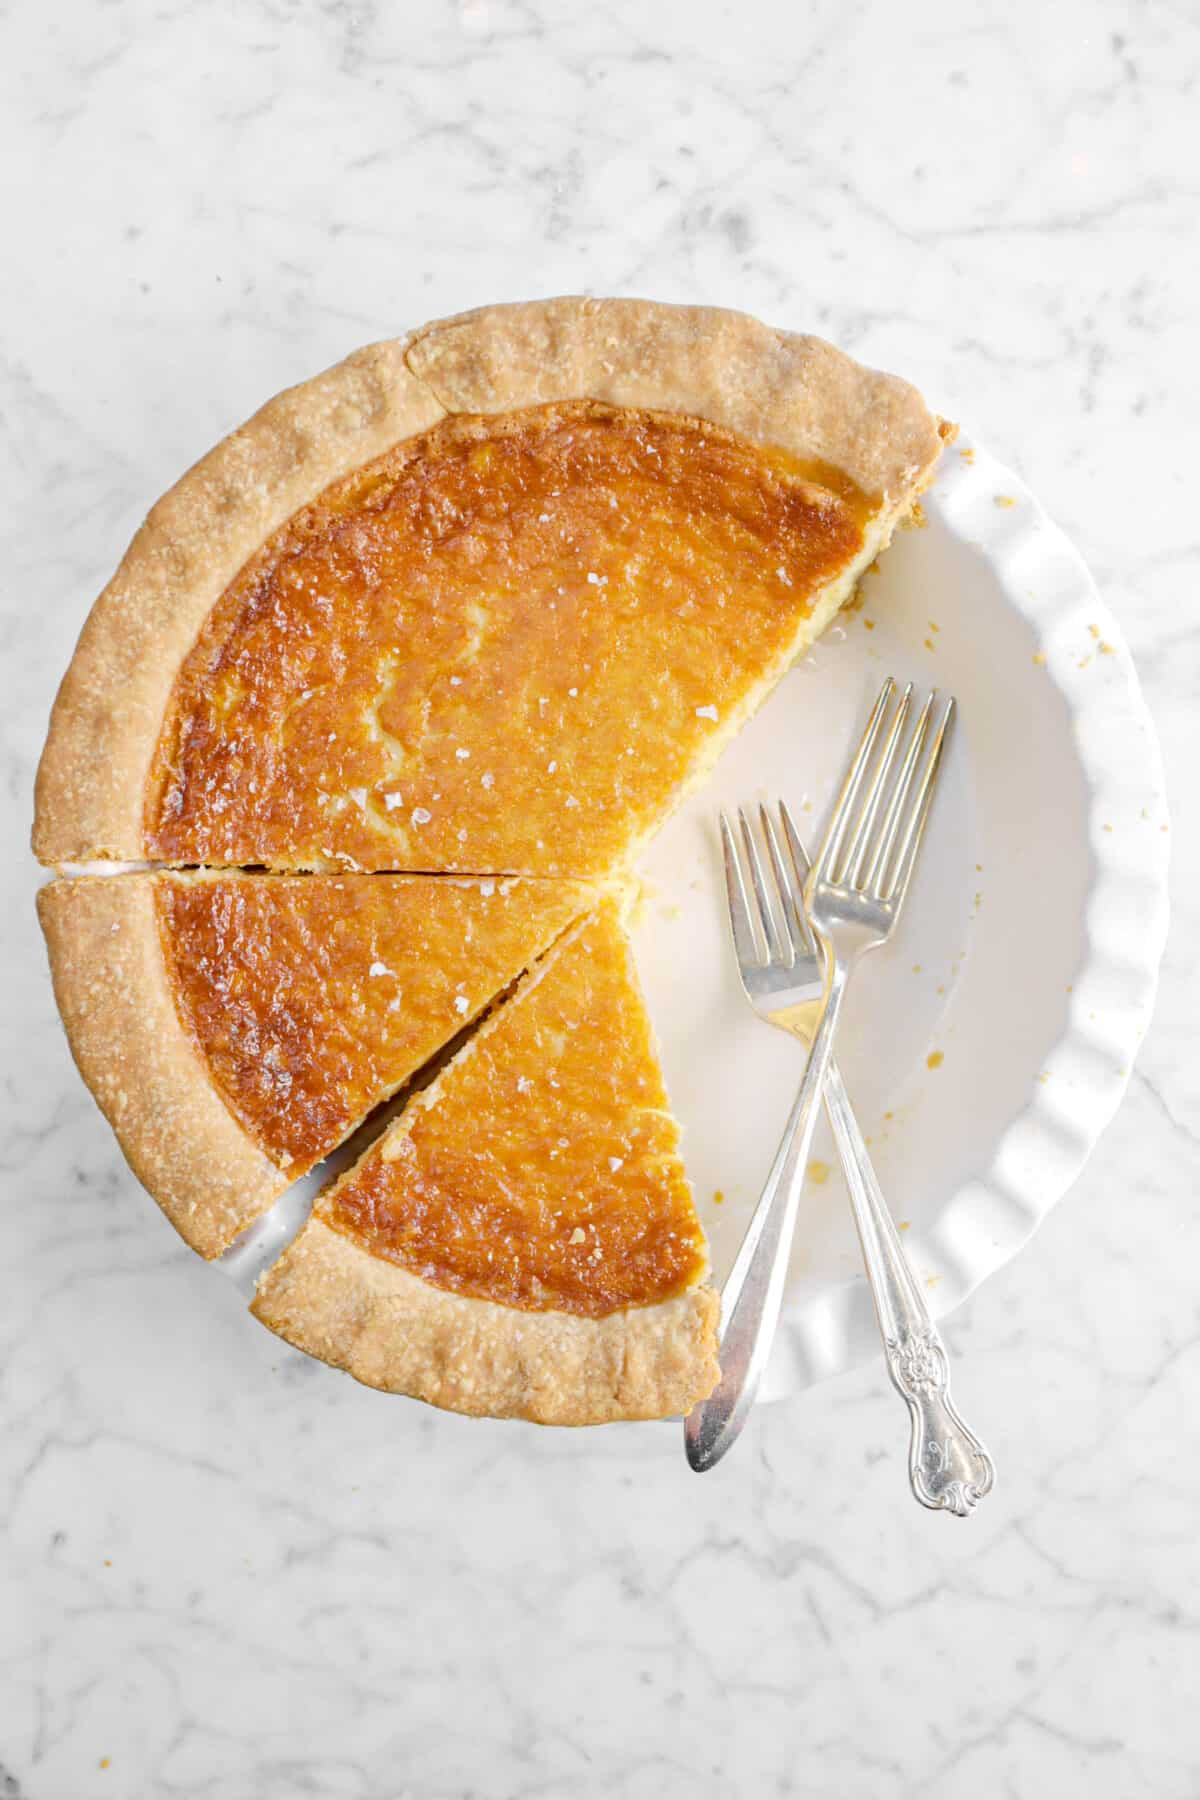 chess pie in a white pie plate with two forks and slices taken out of it